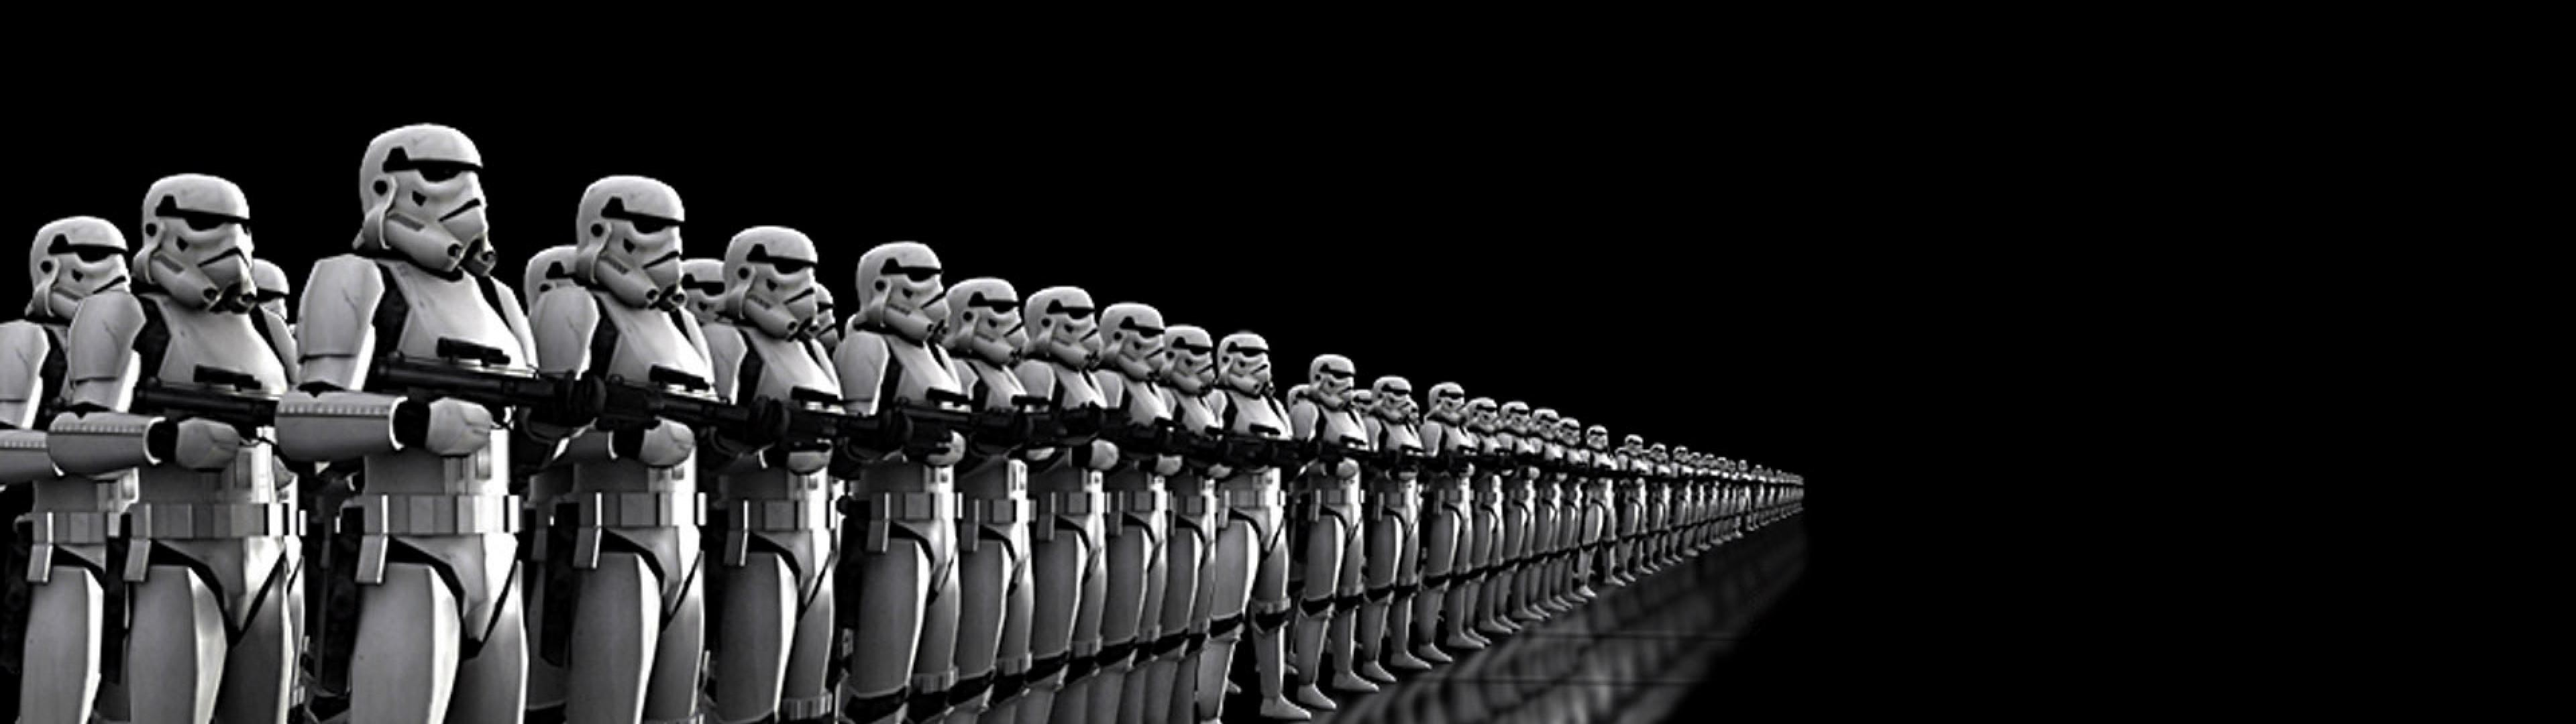 3840x1080 star wars stormtroopers storm troopers HD Wallpaper - Movies & TV .